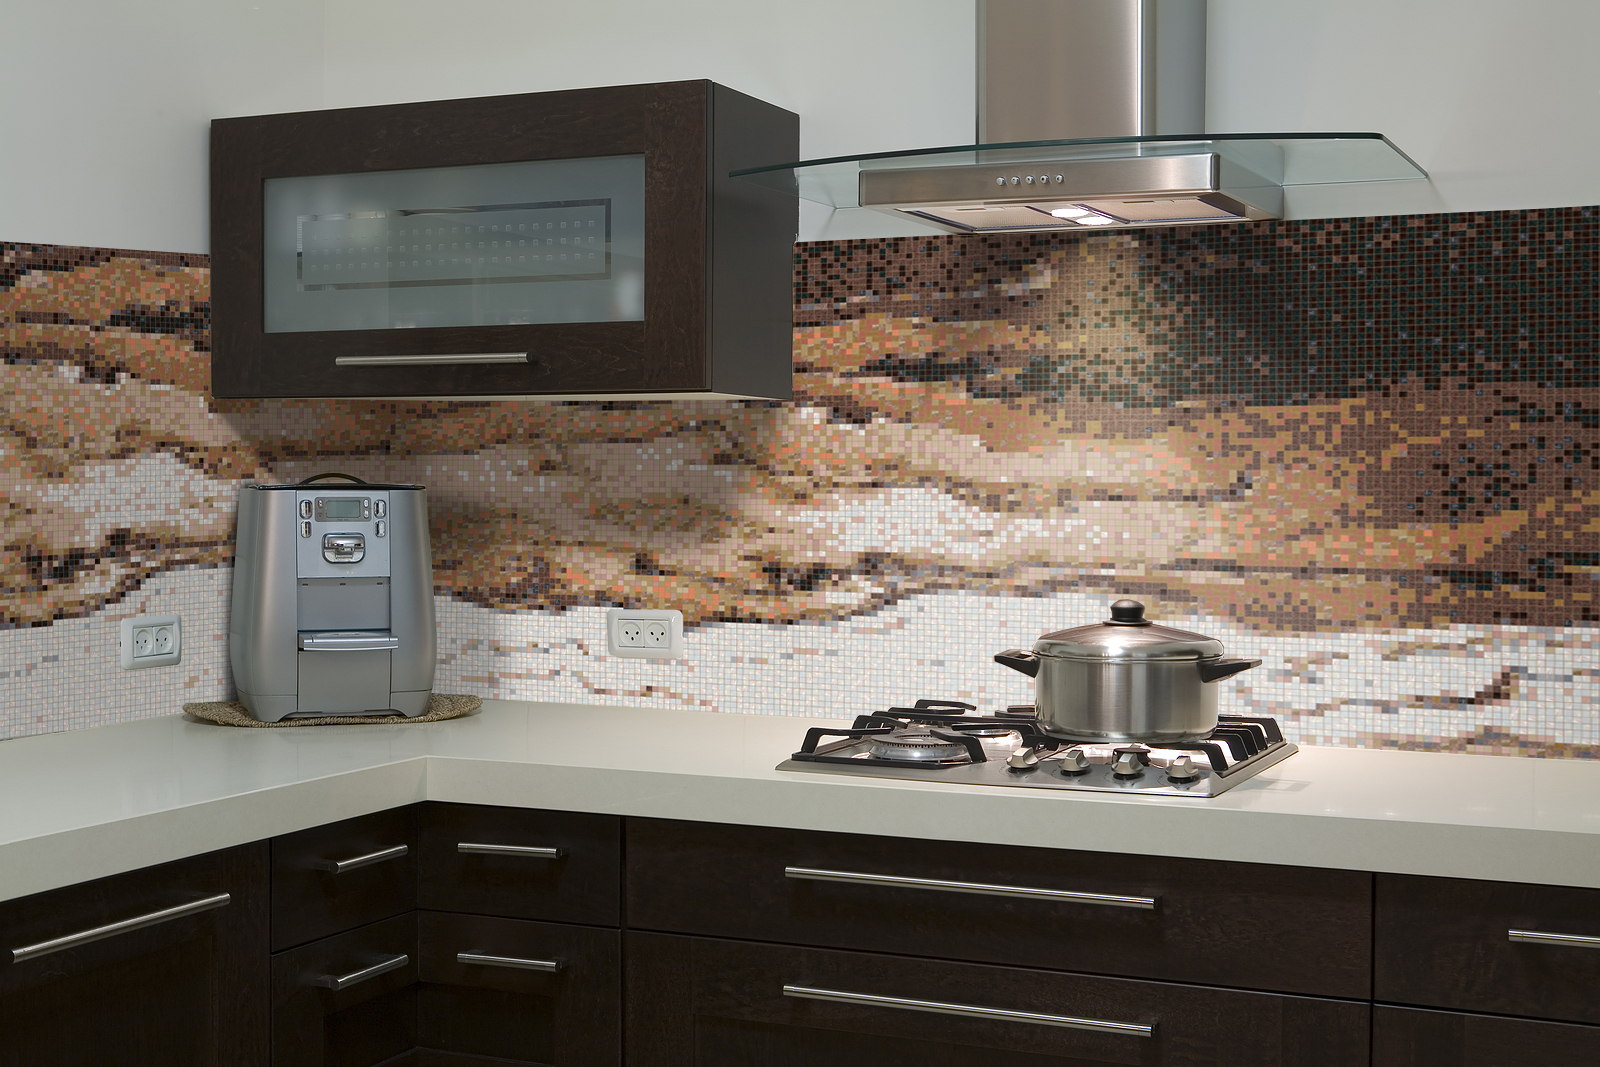 Cool Kitchen Tile Latest Kitchen Tiles Designs Our Best 15 With Pictures